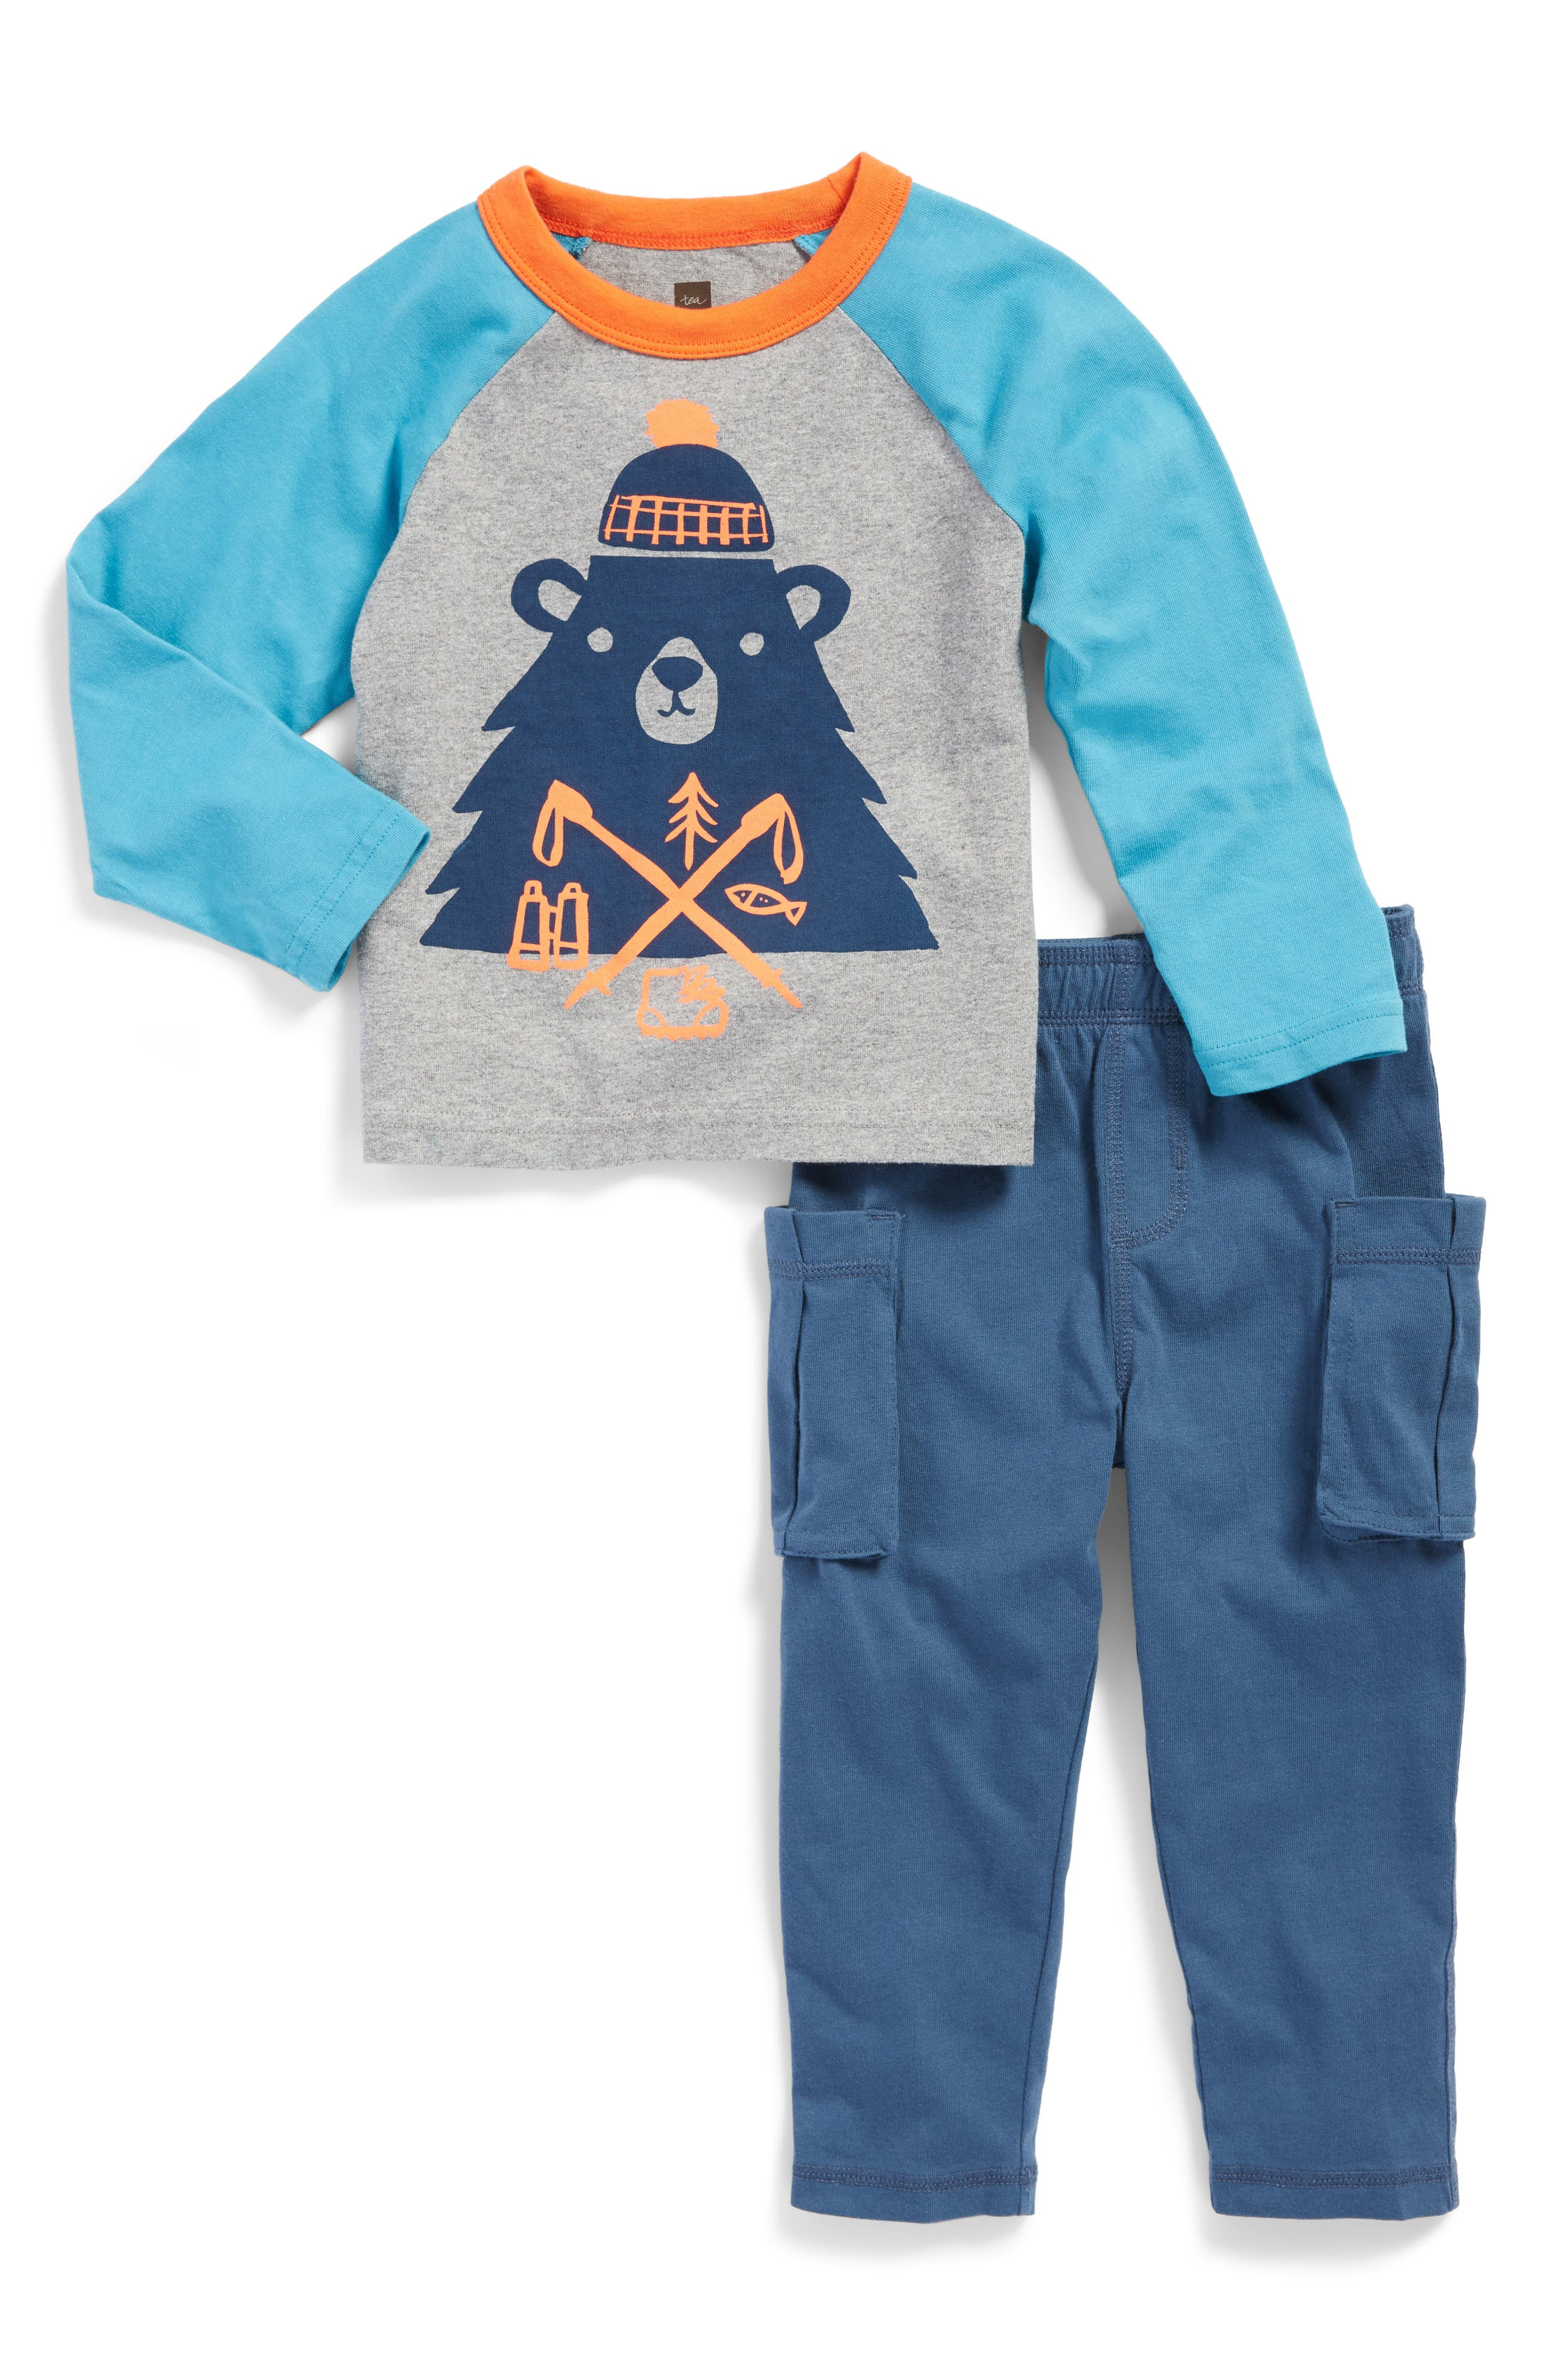 Main Image - Tea Collection Munro Bear Graphic T-Shirt & Cargo Pants Set (Baby Boys)